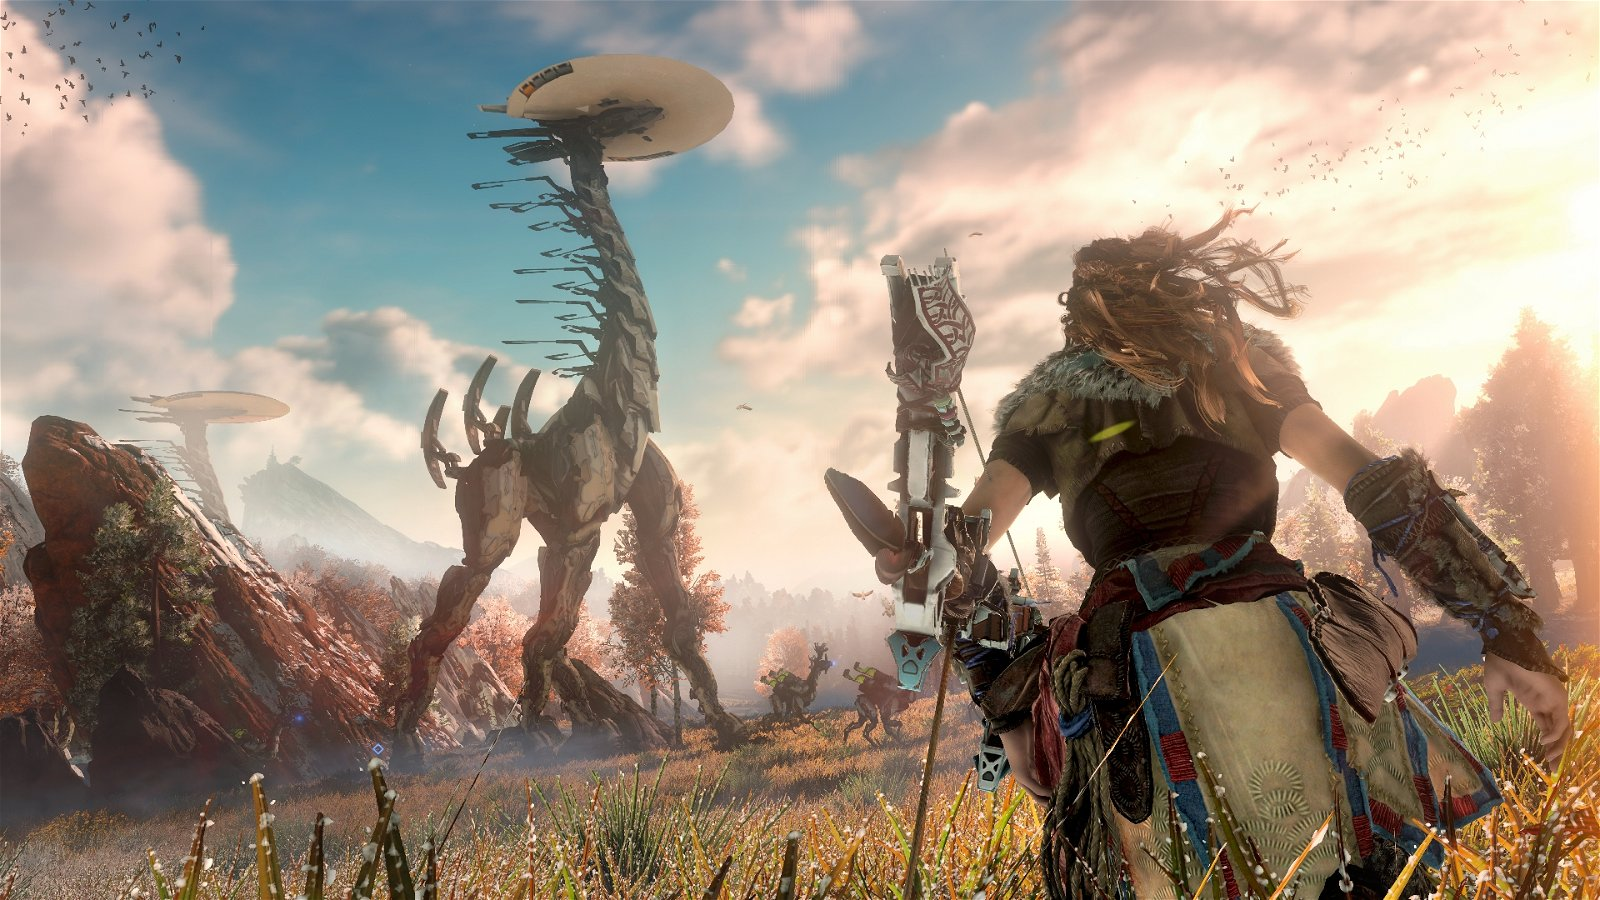 Horizon Zero Dawn Releases New Trailer, Delayed To Early 2017